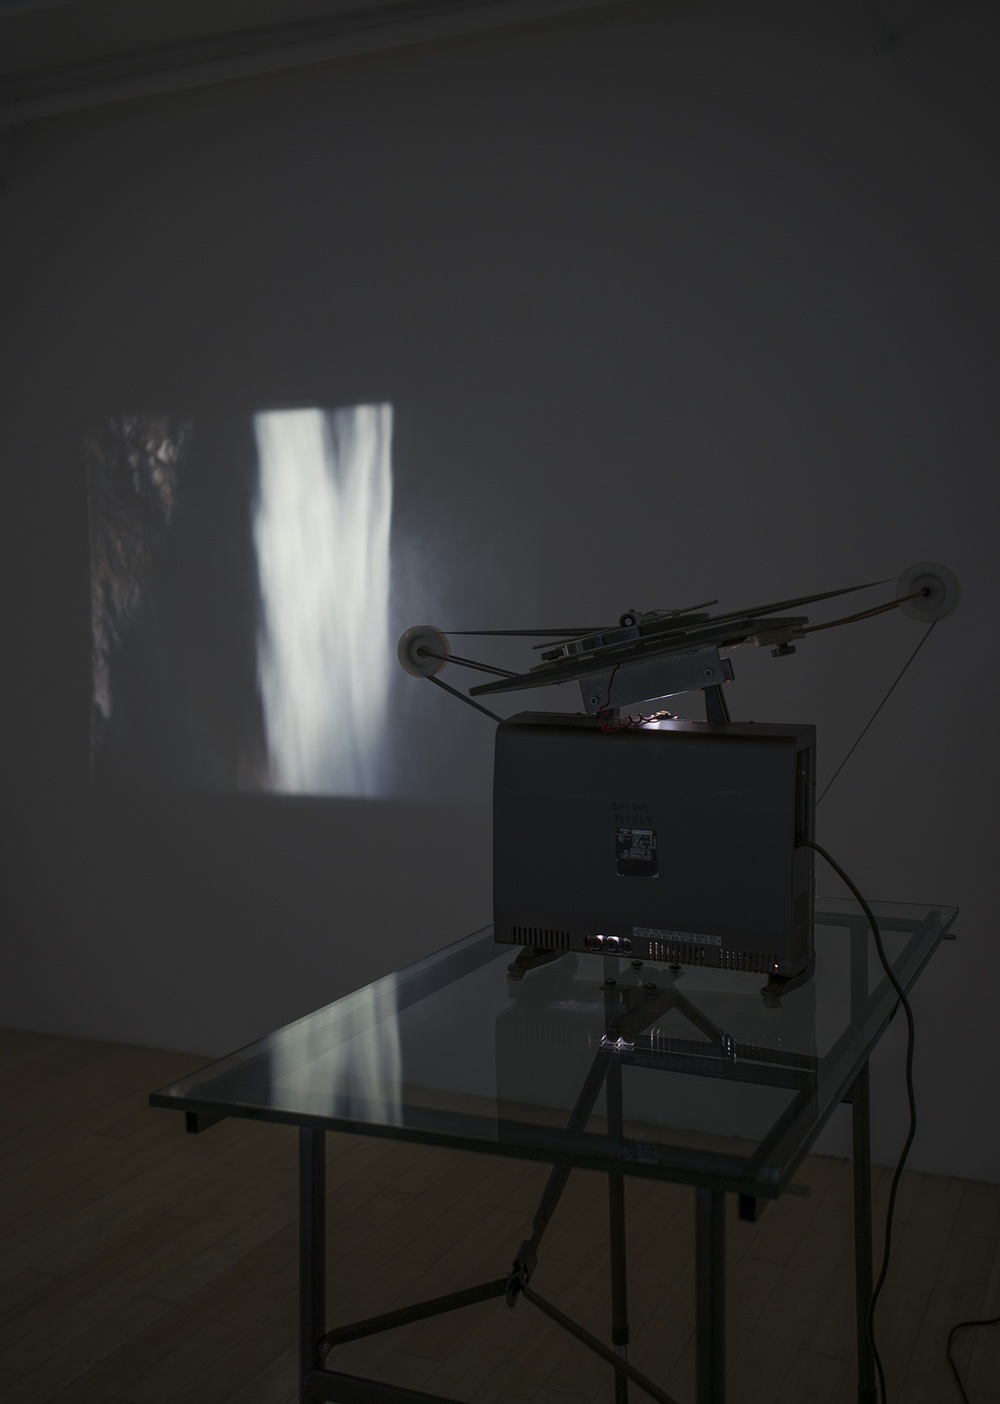 Record Volume   2014 Silent 16mm film, projectors, glass tables, loopers Runtime 2:00 minutes